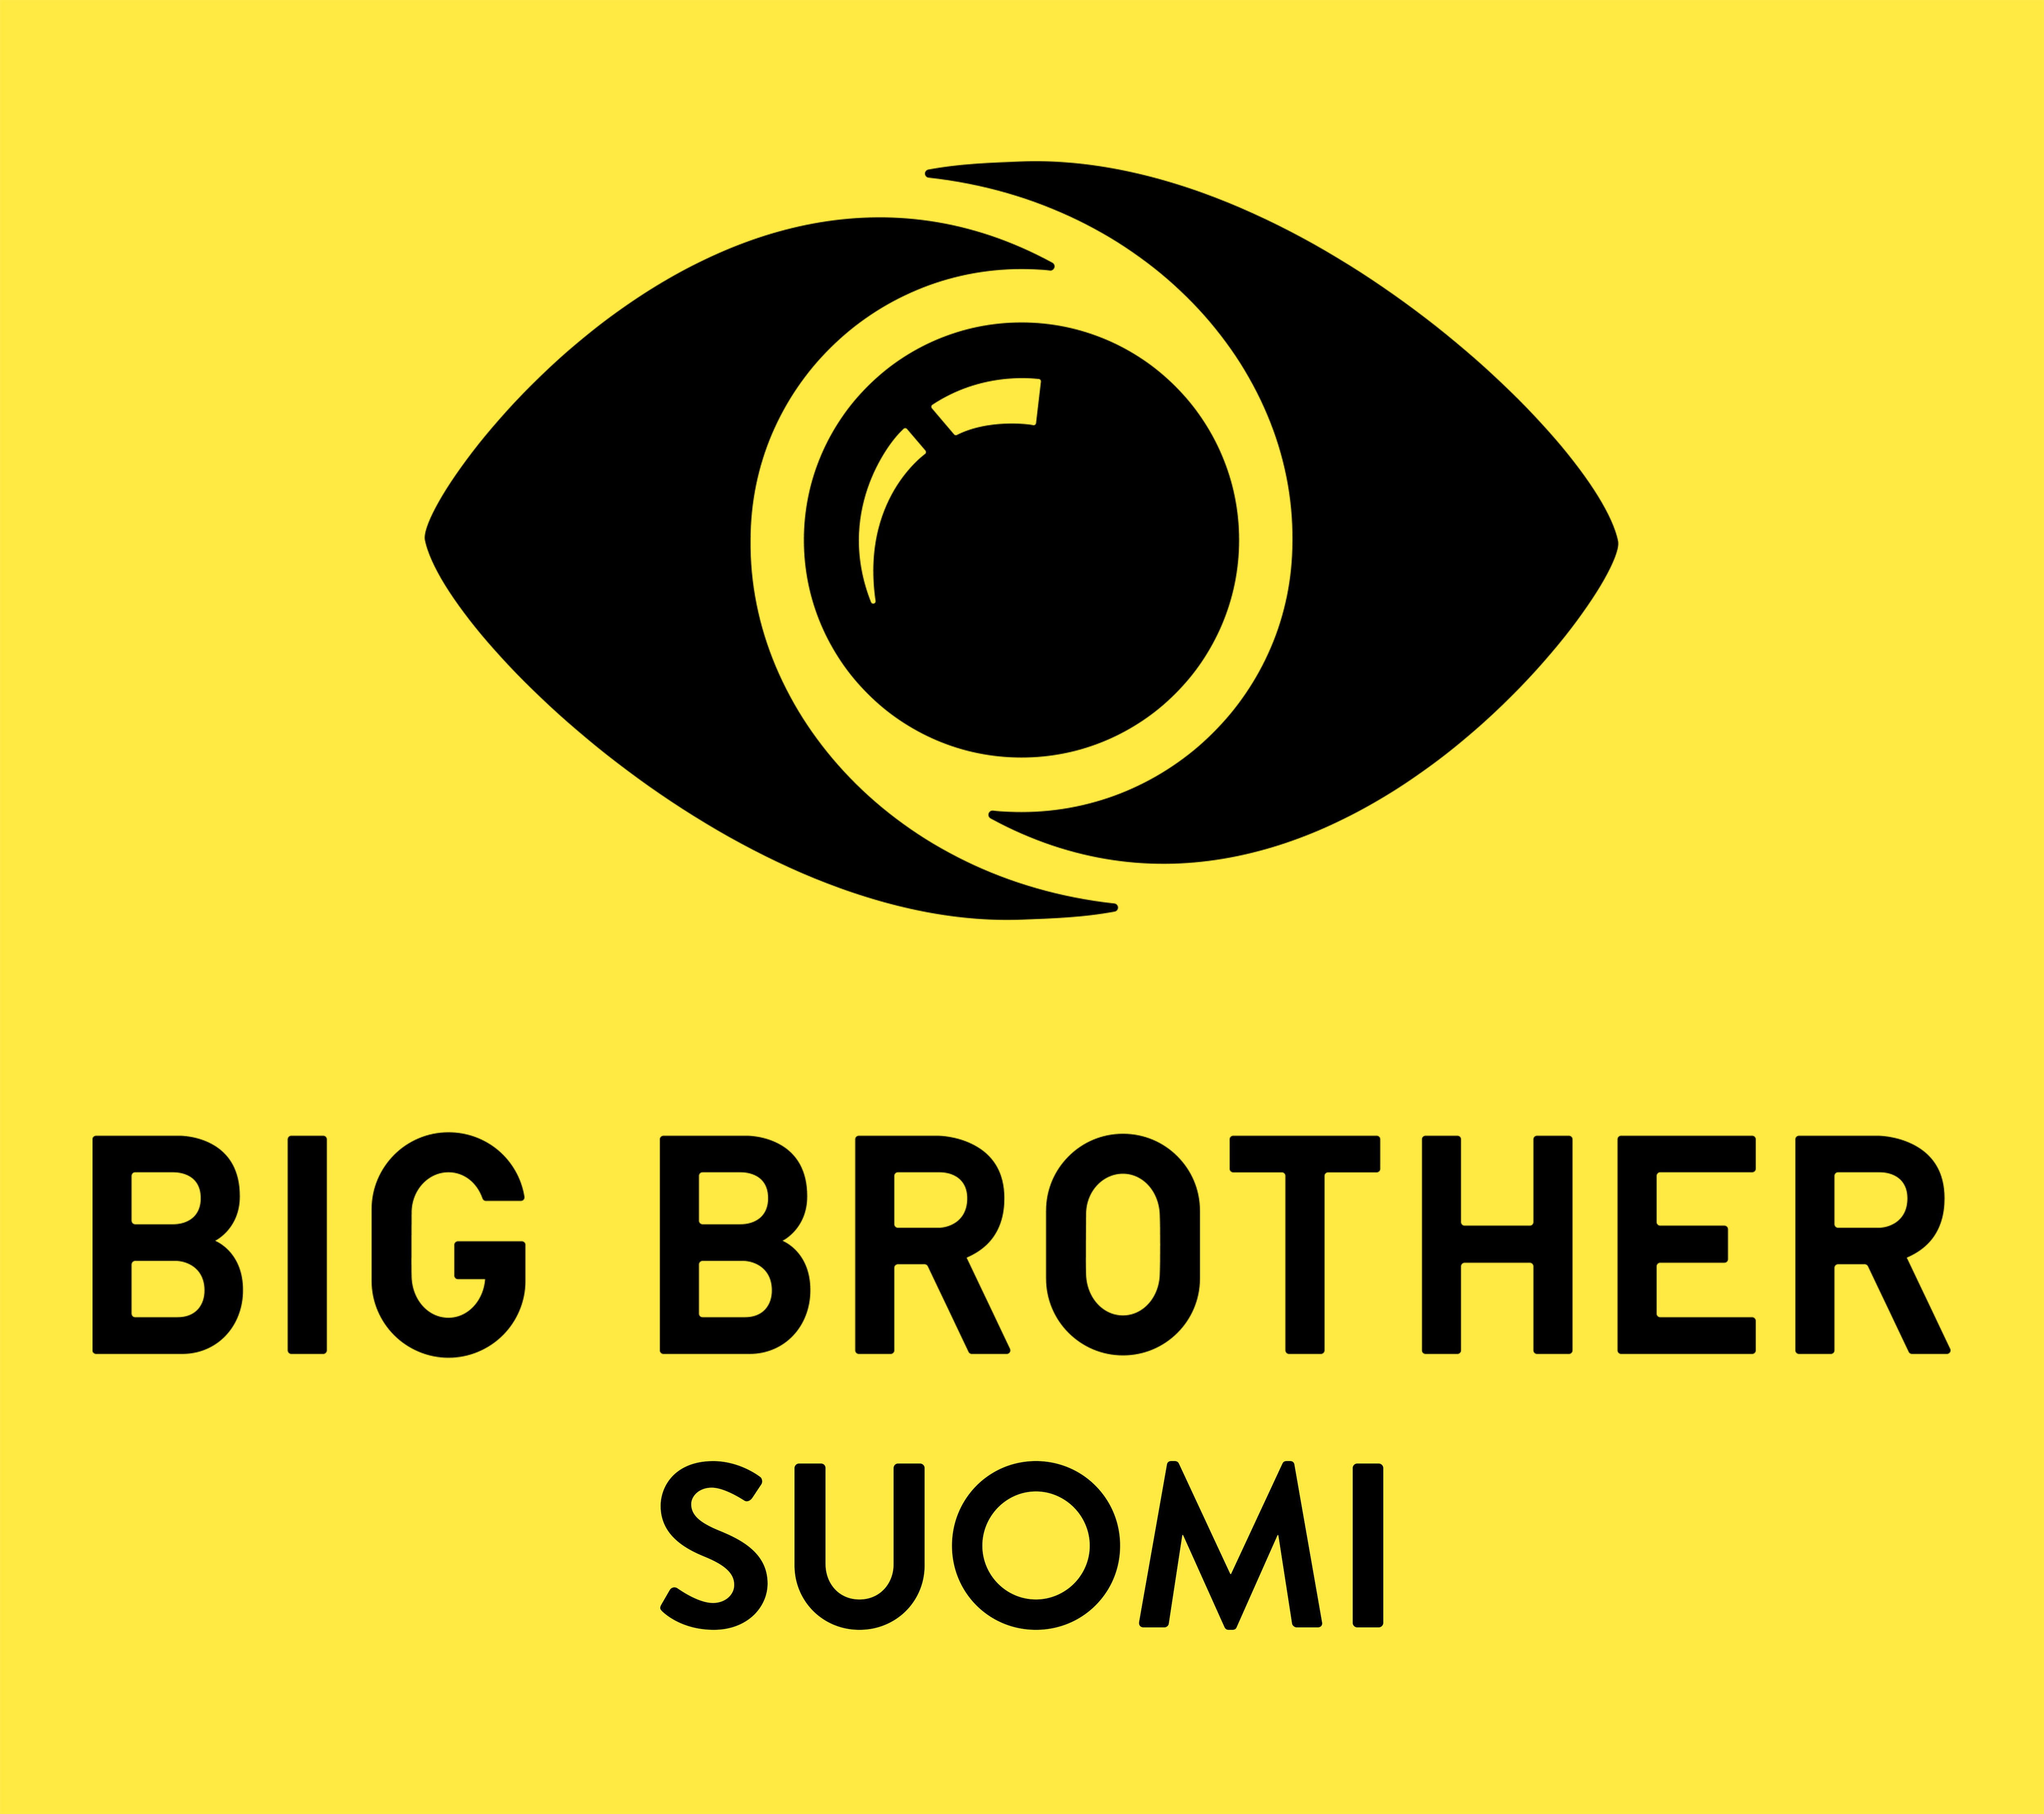 Big Brother 2019 logo. Kuva: © 2019 Nelonen Media.